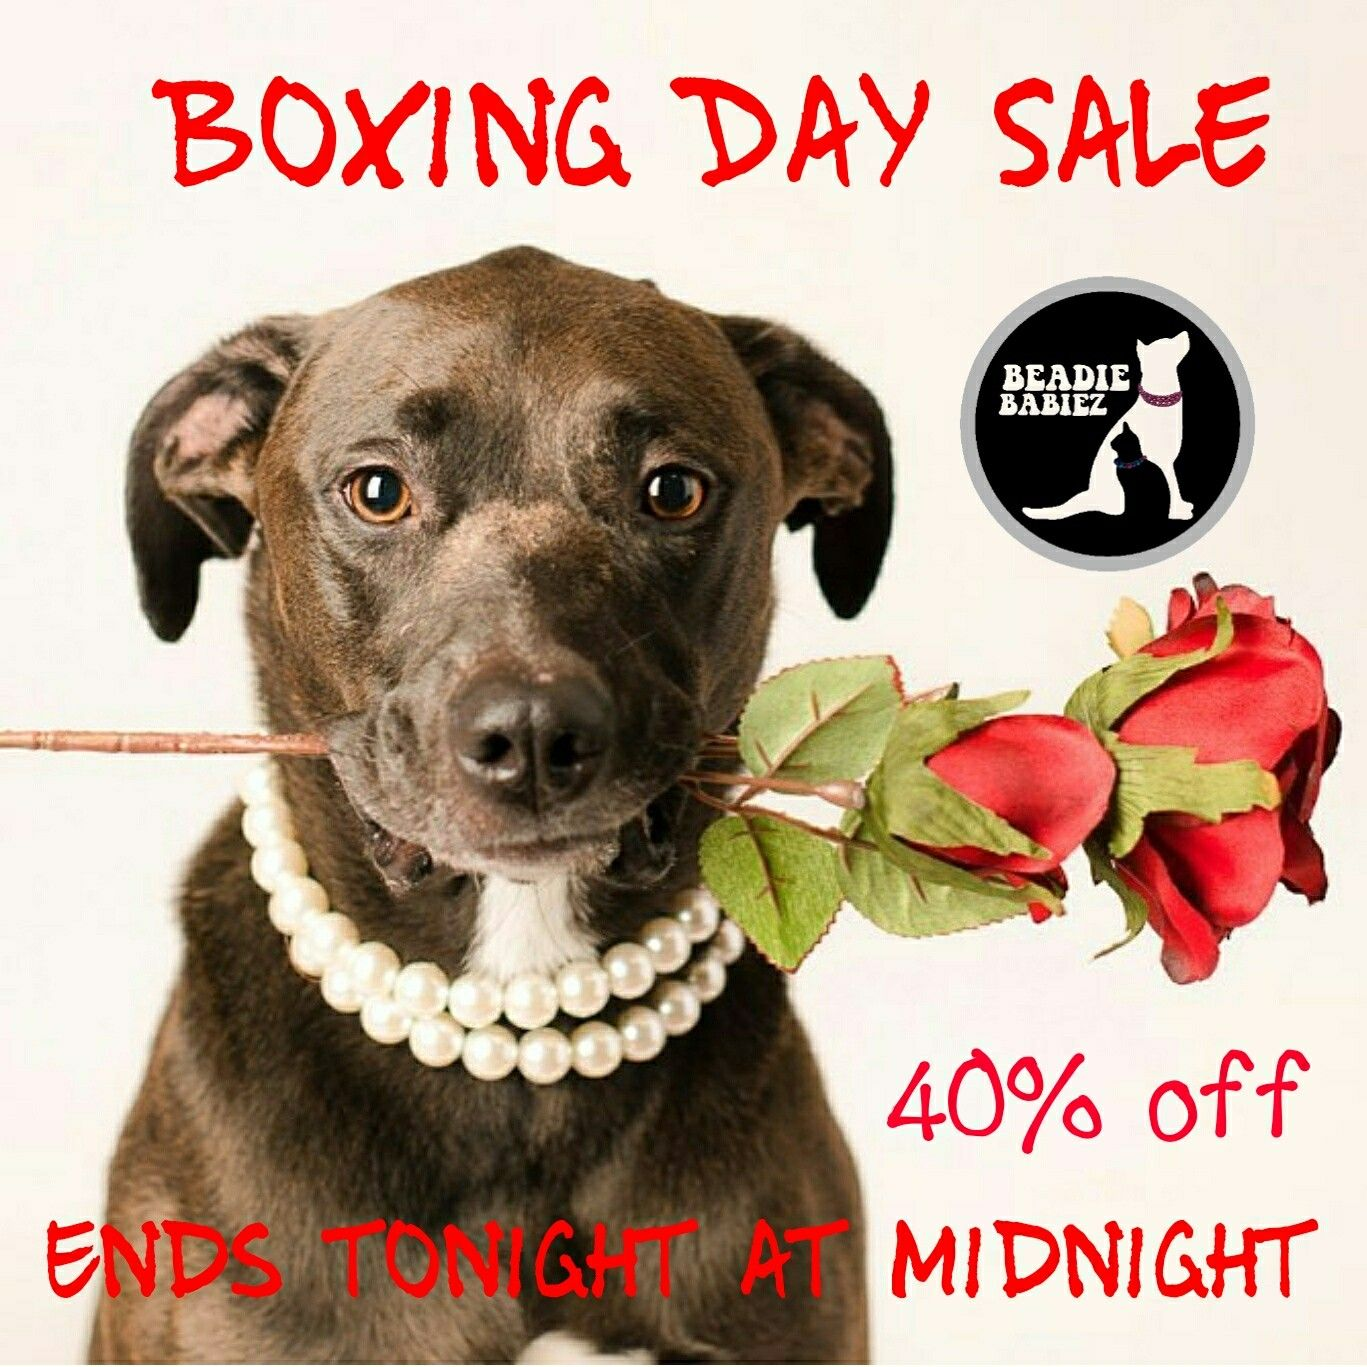 Beadie Babiez Collars Annual Boxing Day Sale Is Back Save 40 Off Your Entire Purchase No Coupon Code Needed Get Your Own Handcraf Handcraft Etsy Etsy Finds